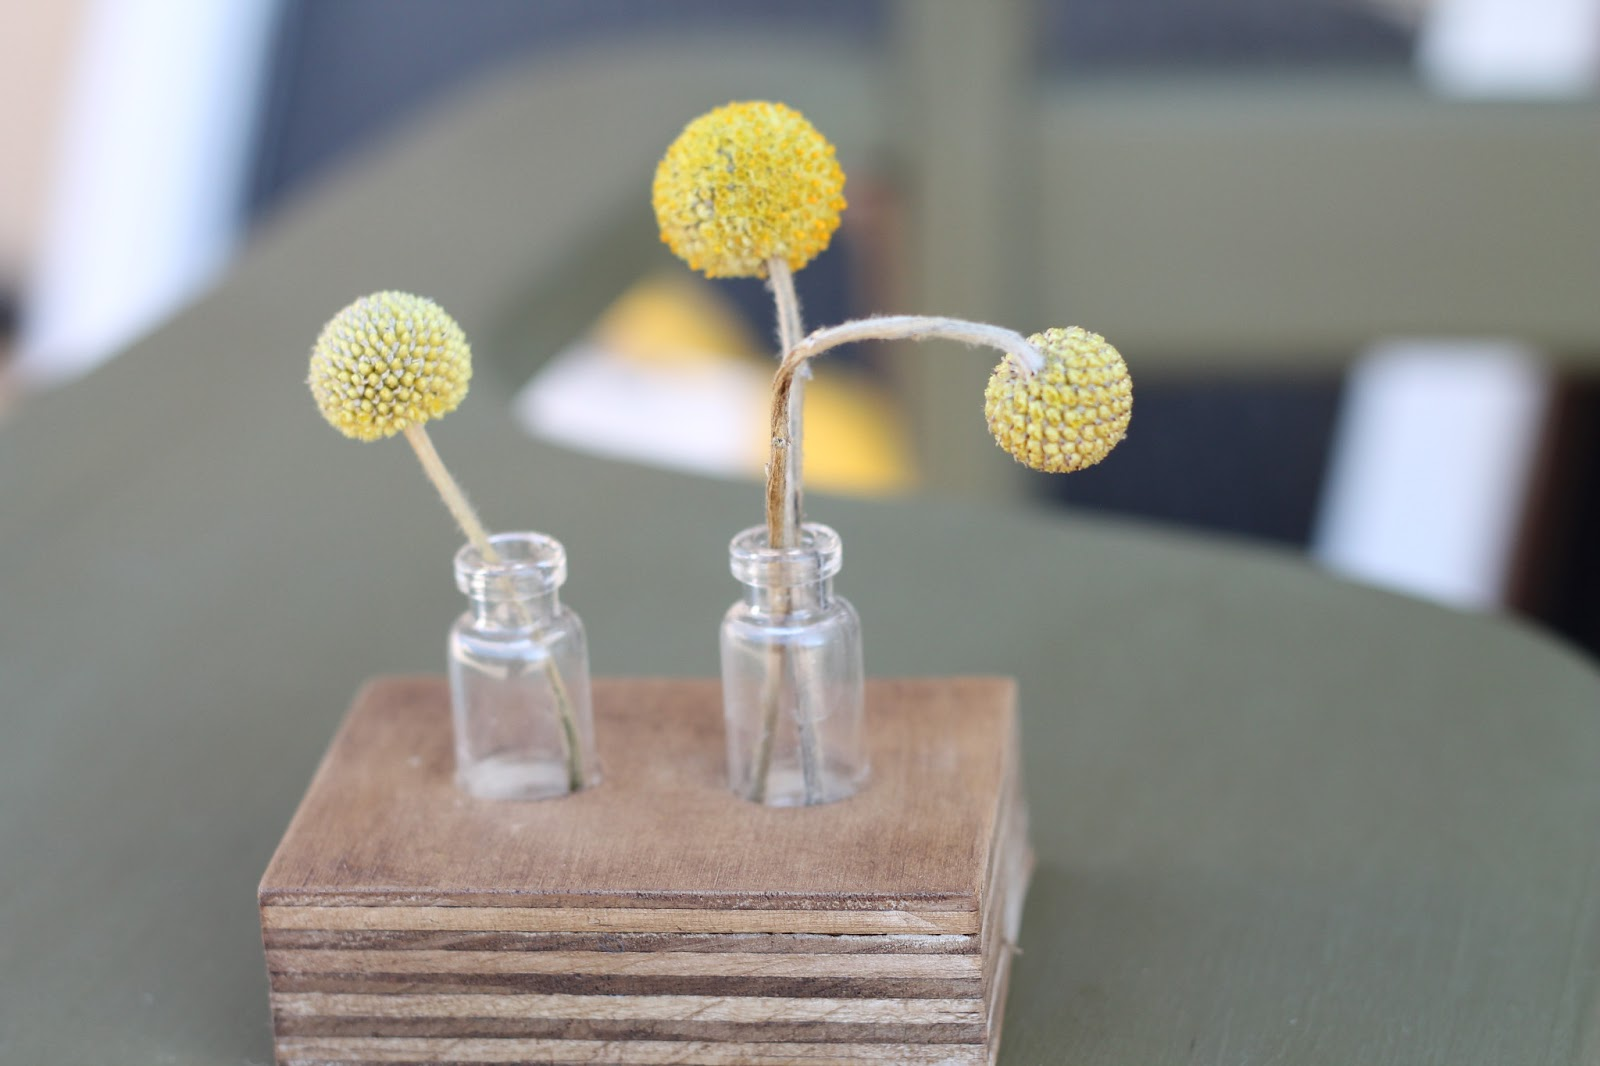 Walrus reclaimed wood bud vase holder we create these bud vase holders from reclaimed wood and tiny vintage glass bottles no two are alike but they are a beautiful way to display a small reviewsmspy